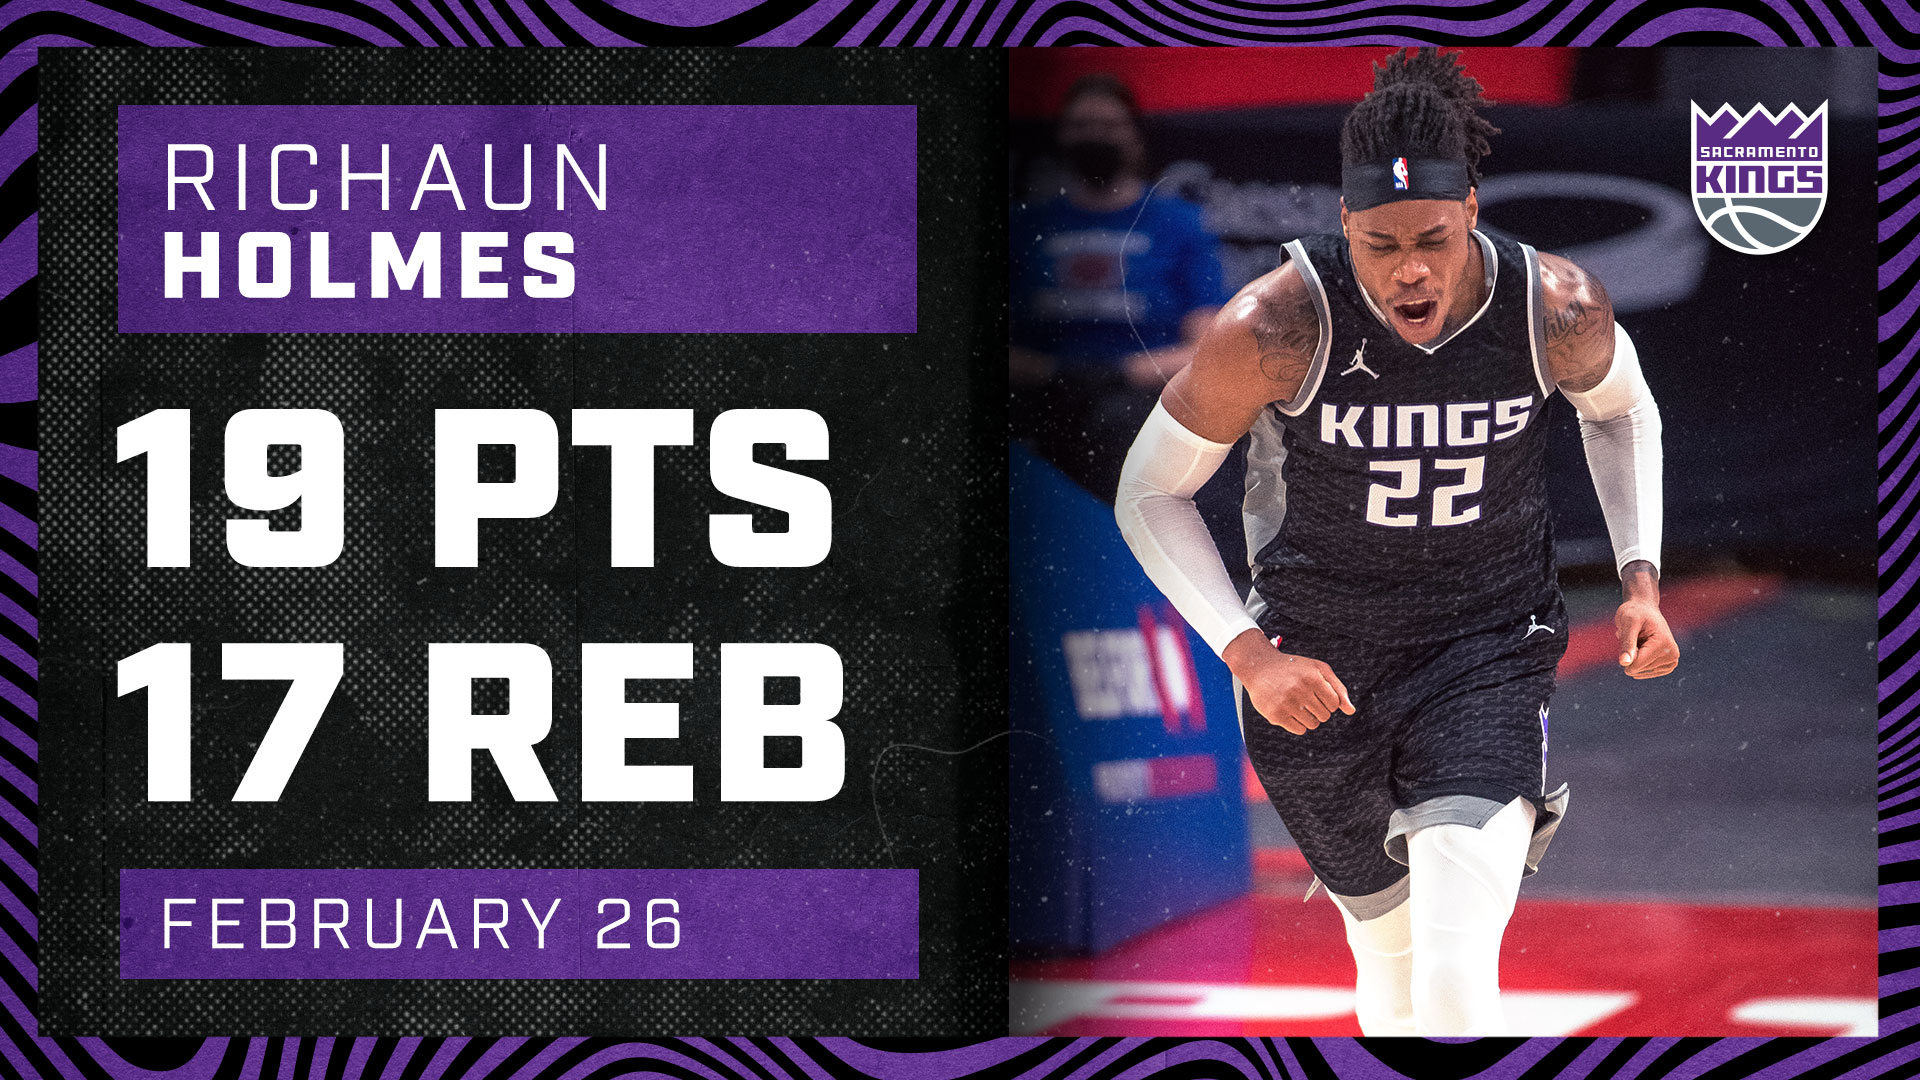 Richaun Holmes with 17 BOARDS in the W   Kings vs Pistons 2.26.21